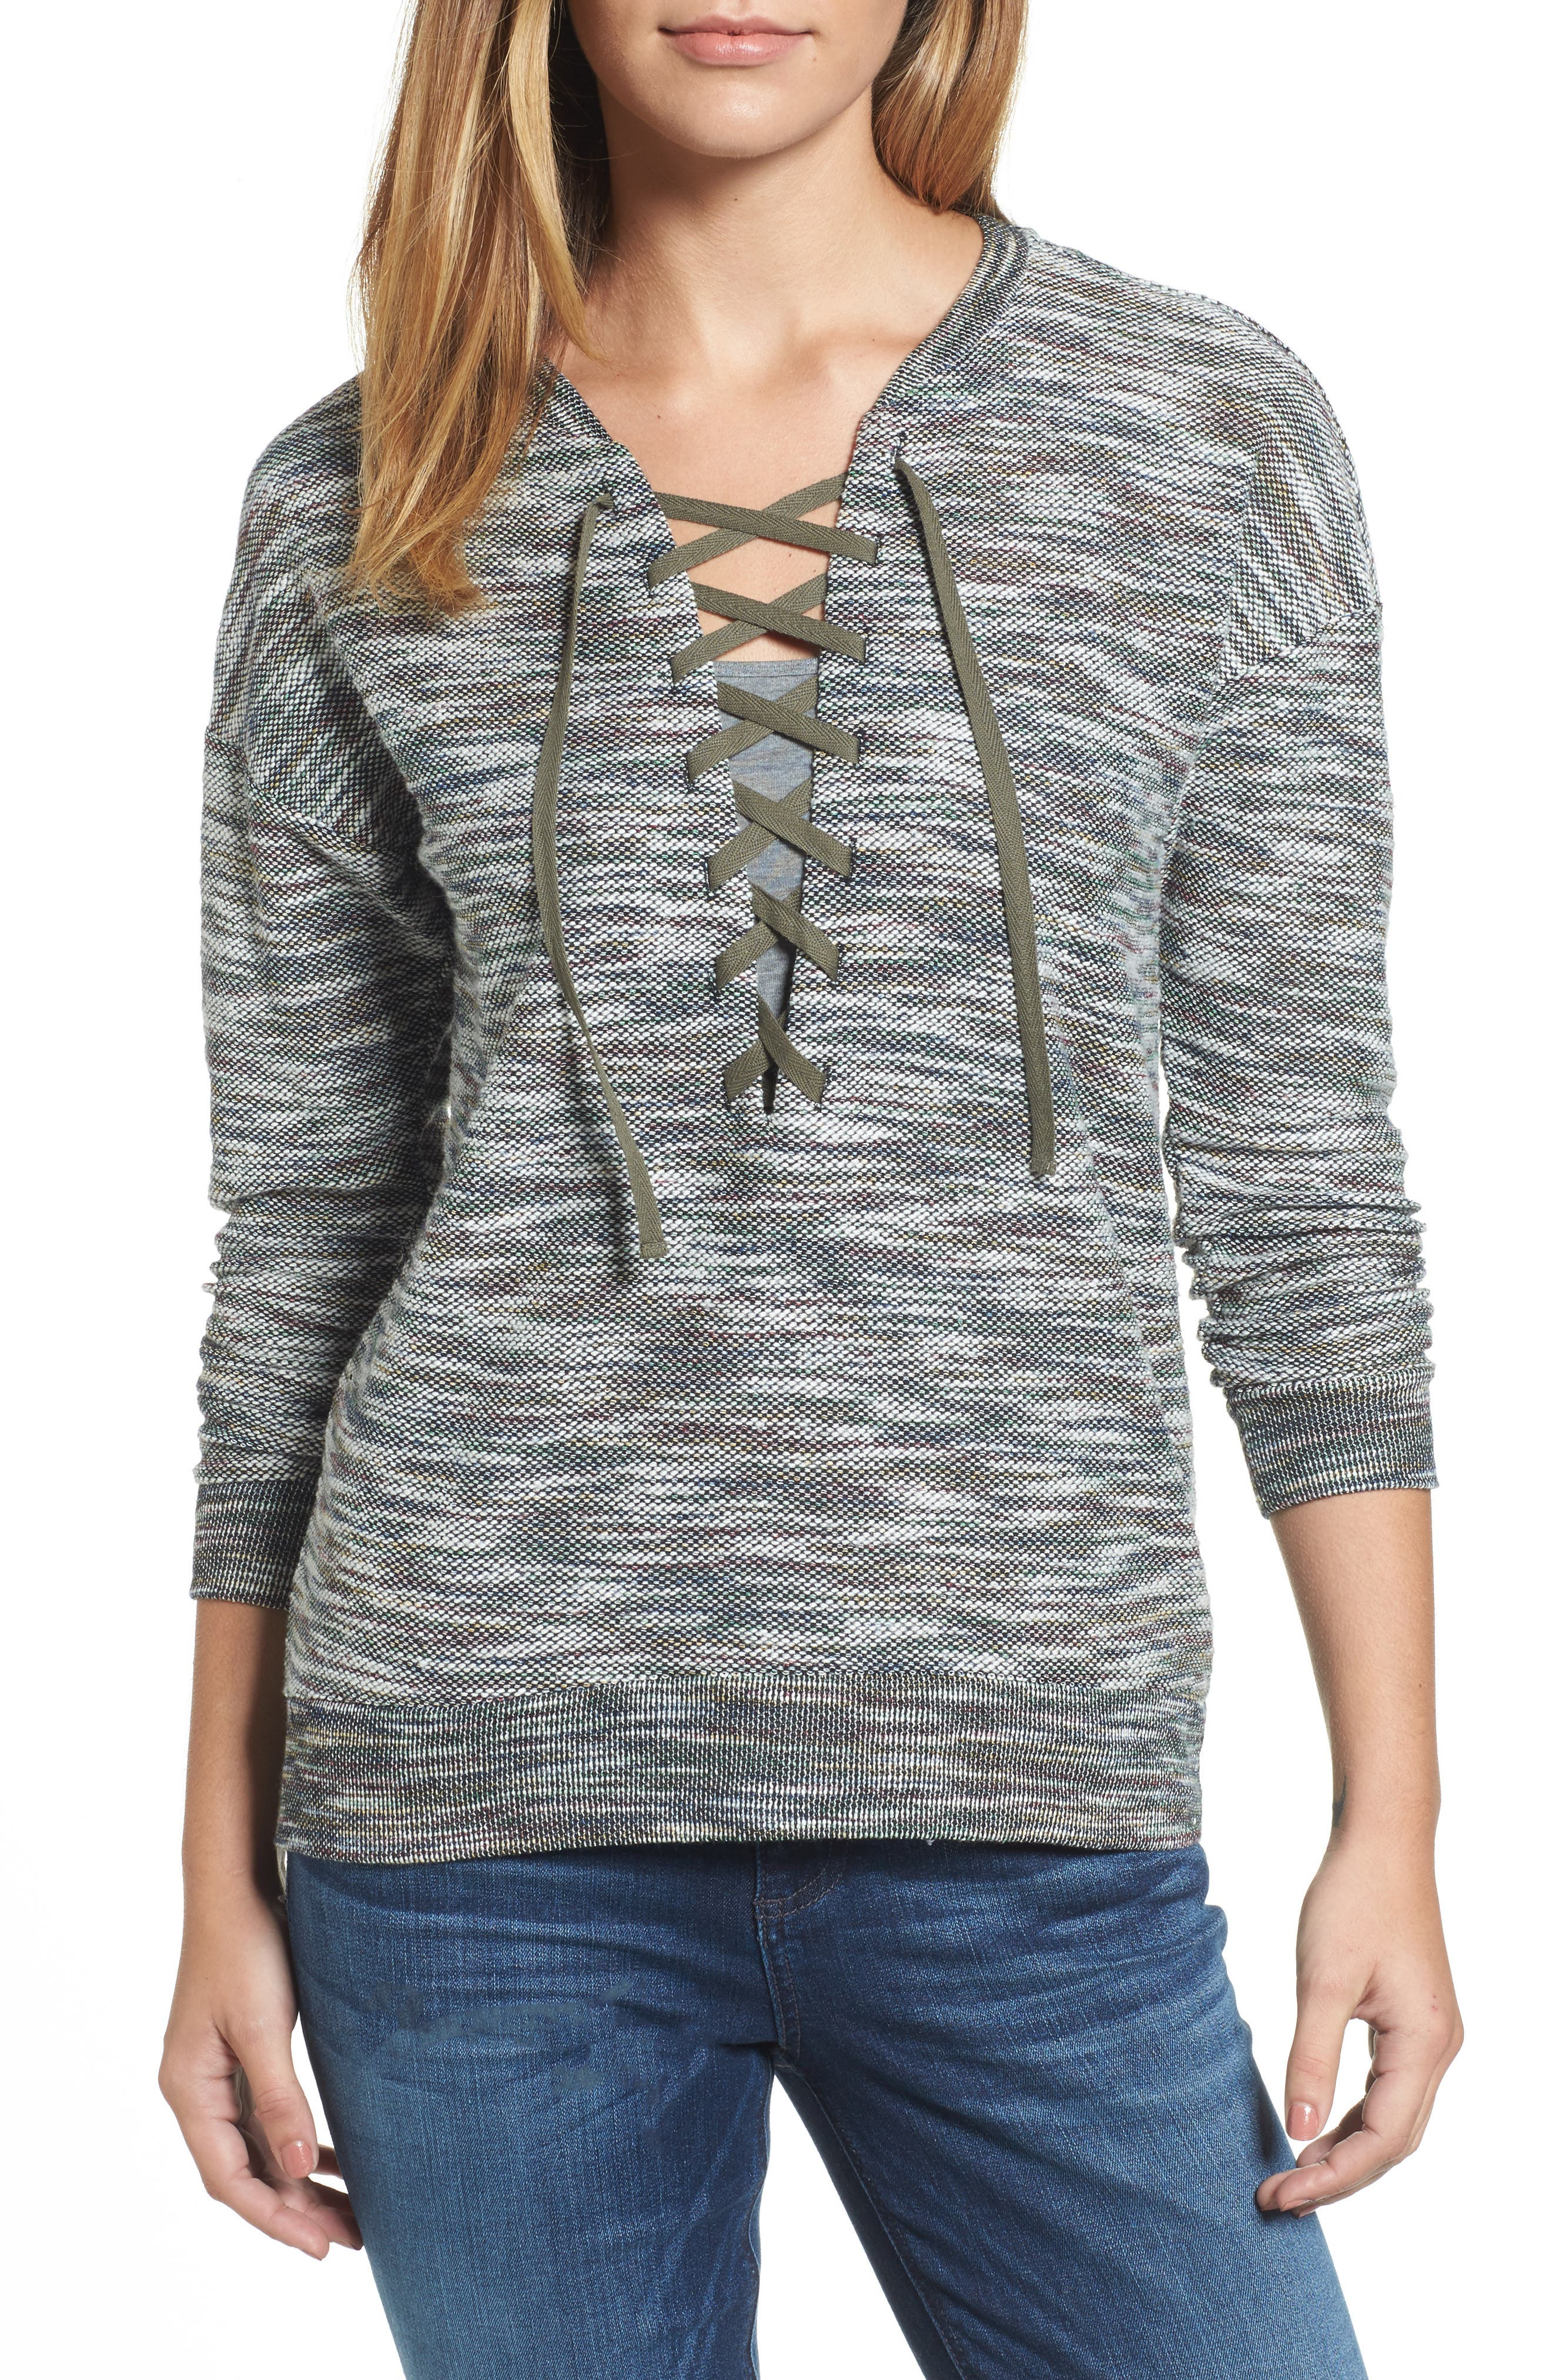 Main Image - KUT from the Kloth Everly Lace-Up Sweater